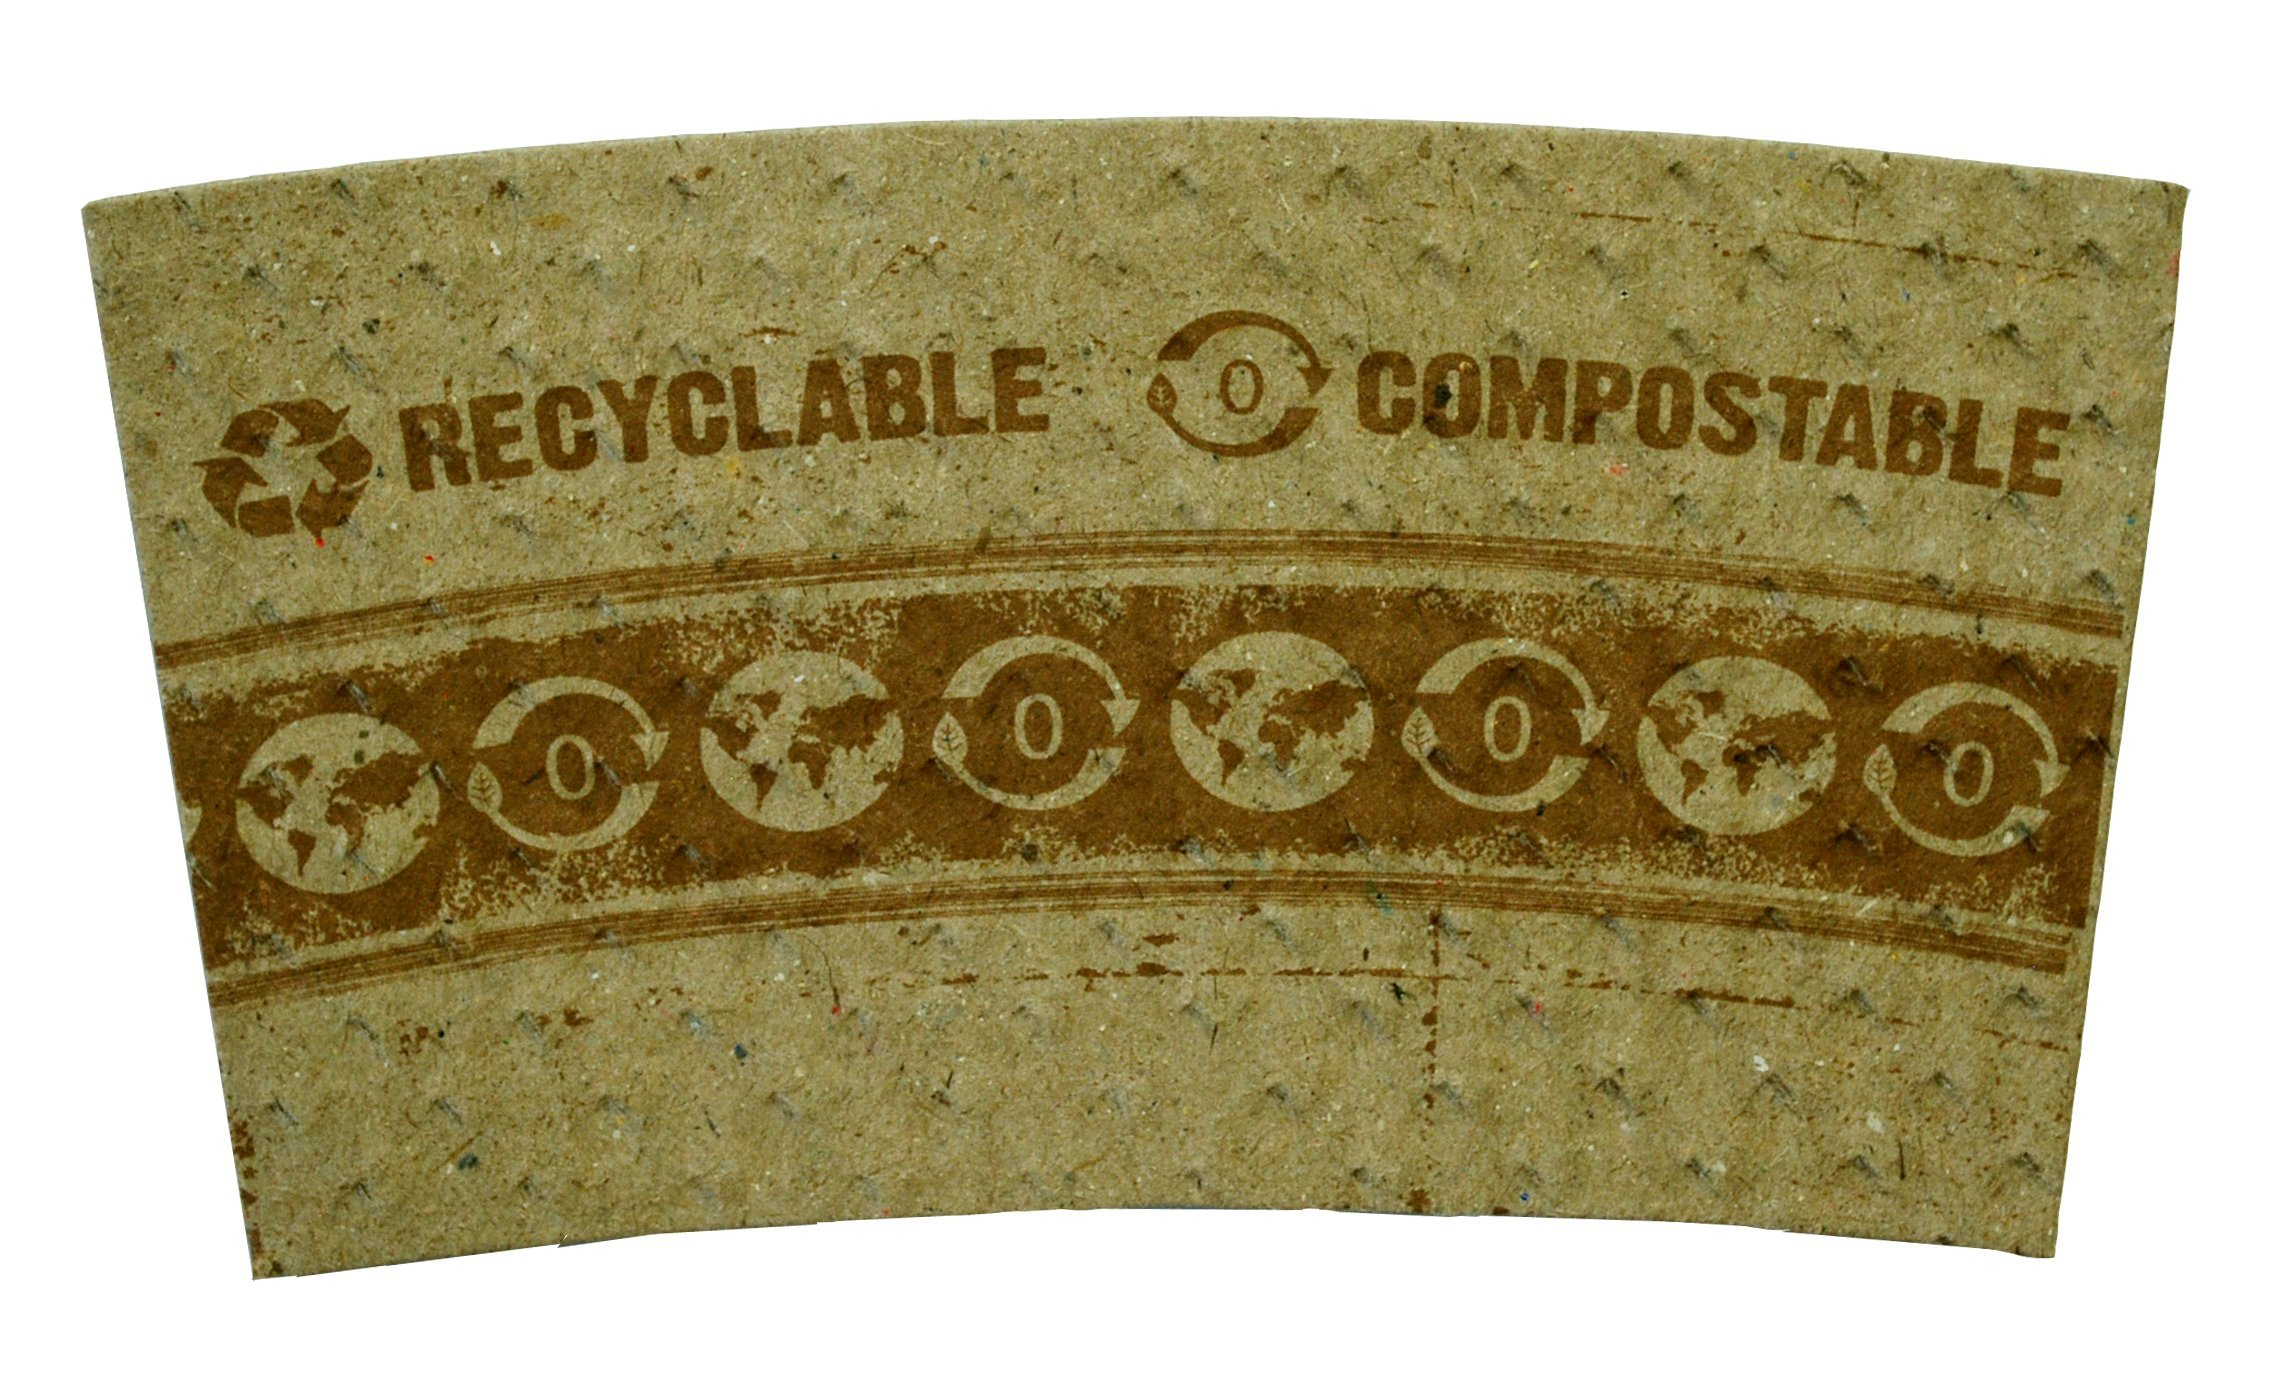 World Centric SL-PA-LG Compostable 100% Post-Consumer Recycled Paper Hot Cup Sleeves, for 10 - 20 oz. Cups (Pack of 1000)